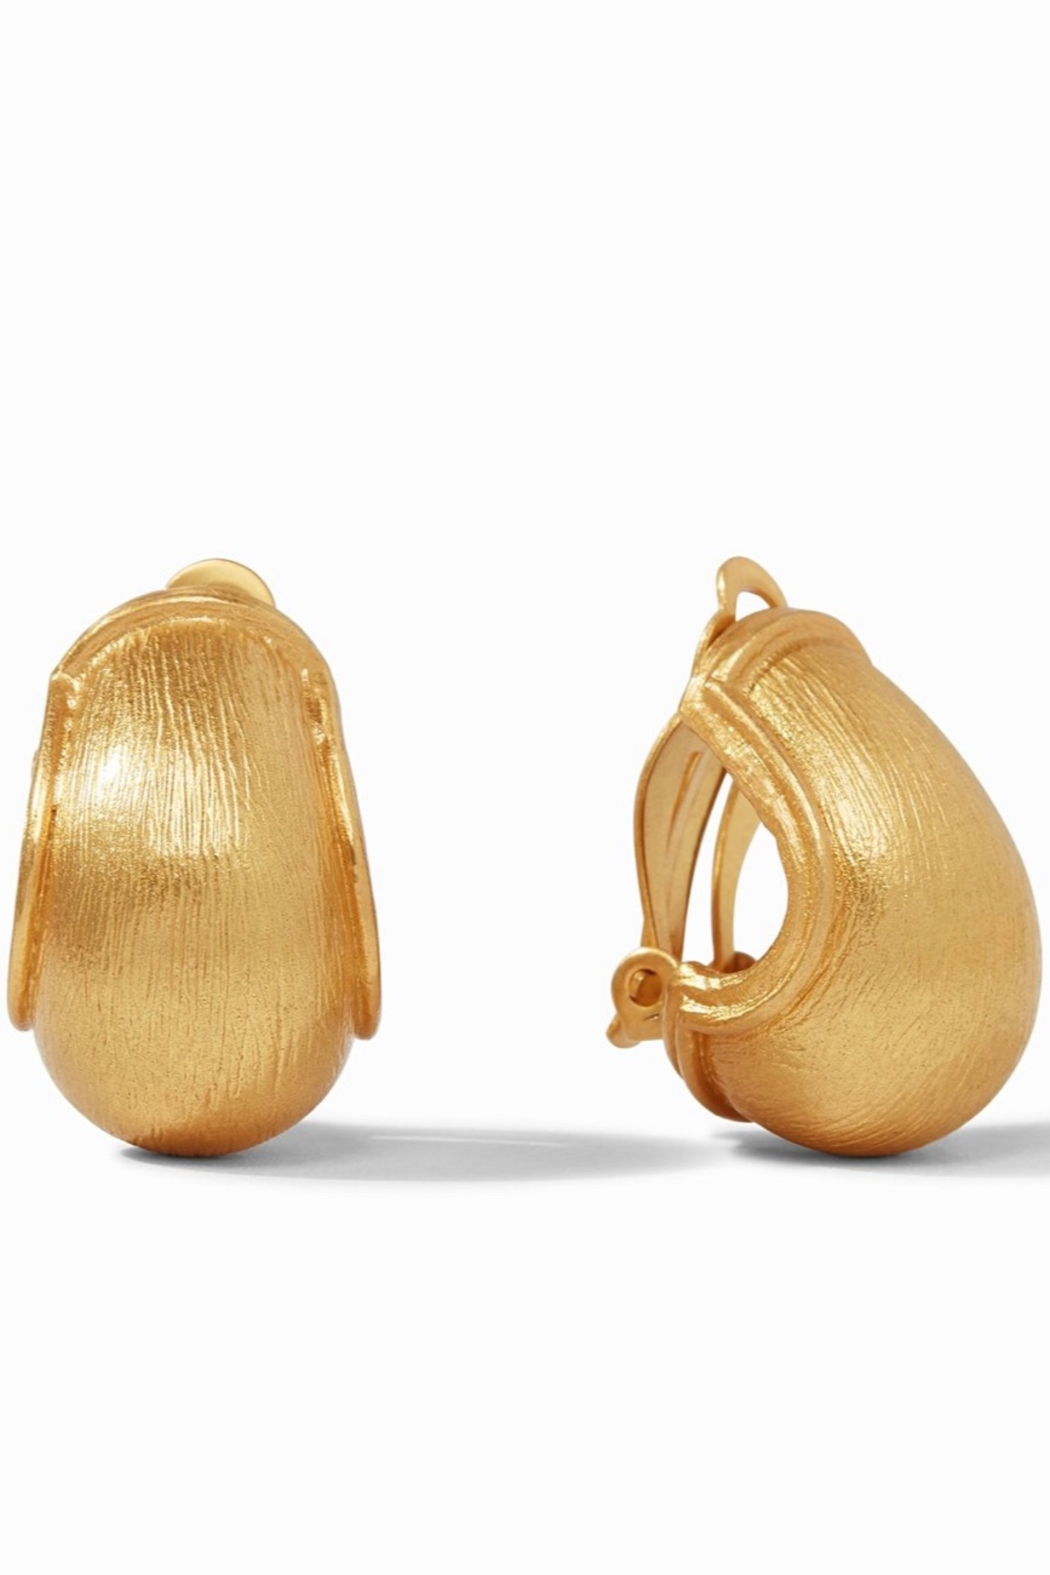 Julie Vos Aspen Clip Earrings - Main Image